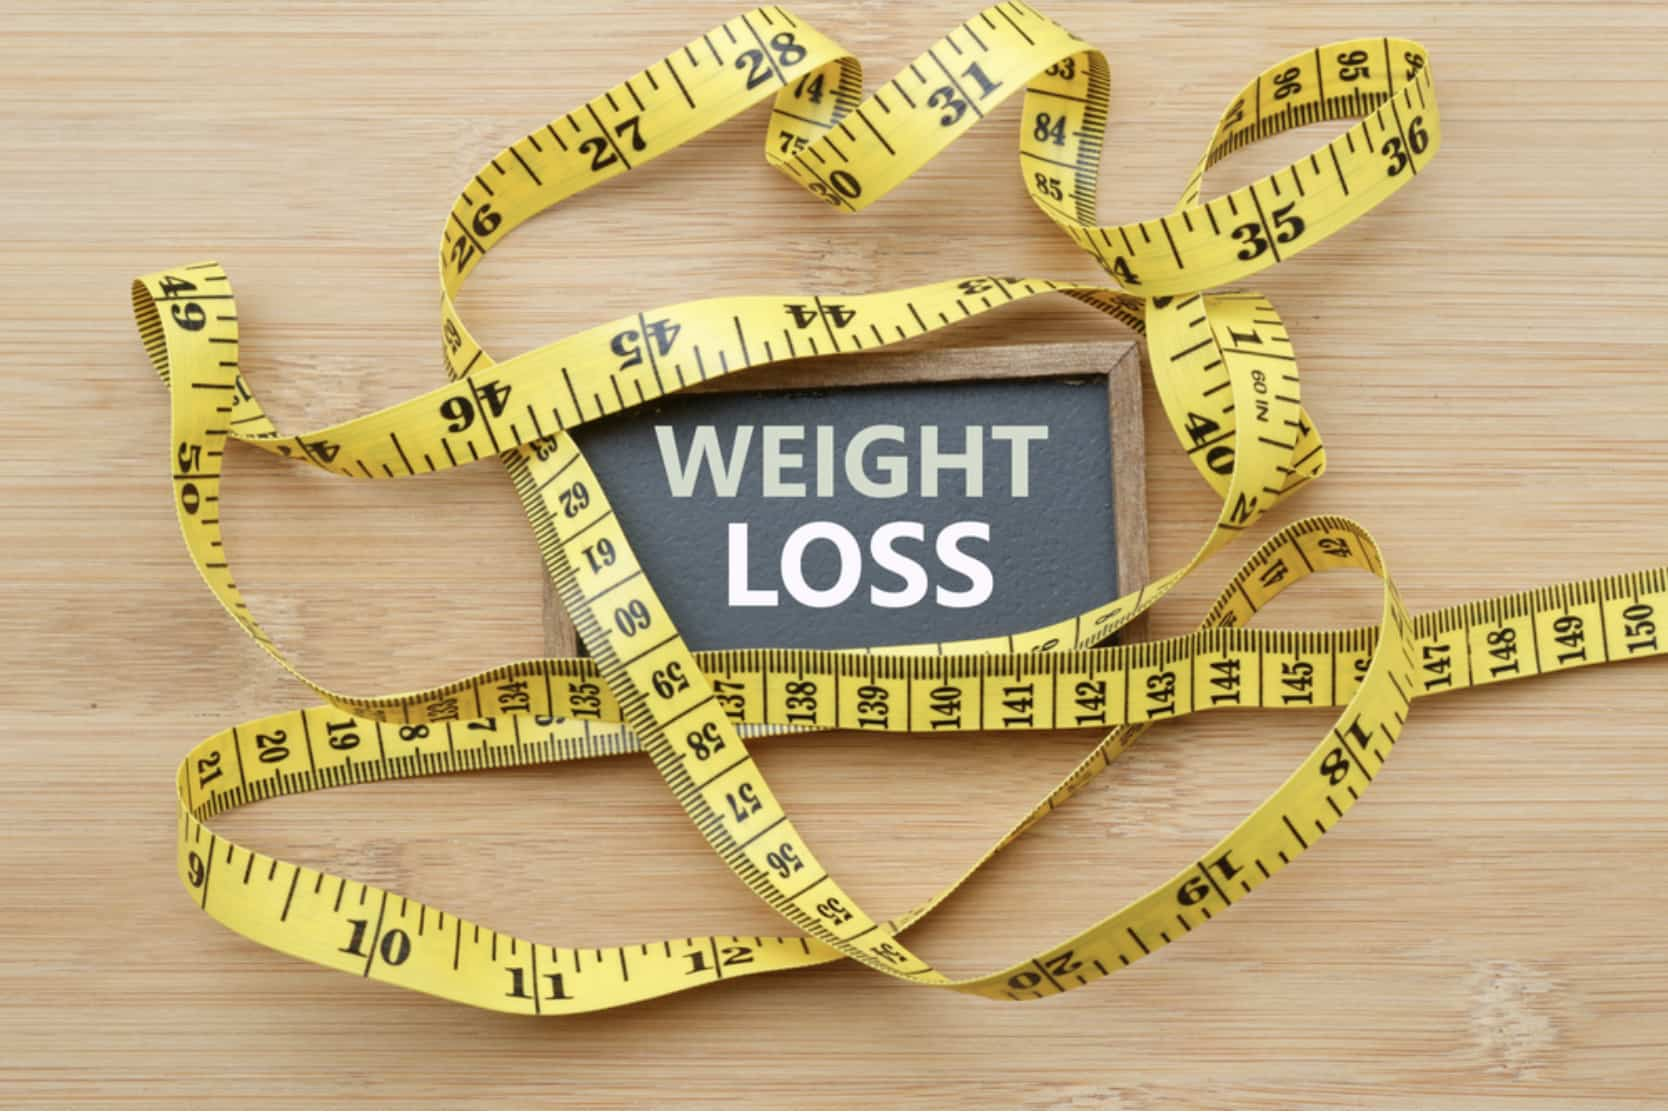 South Loop IL weight loss clinic